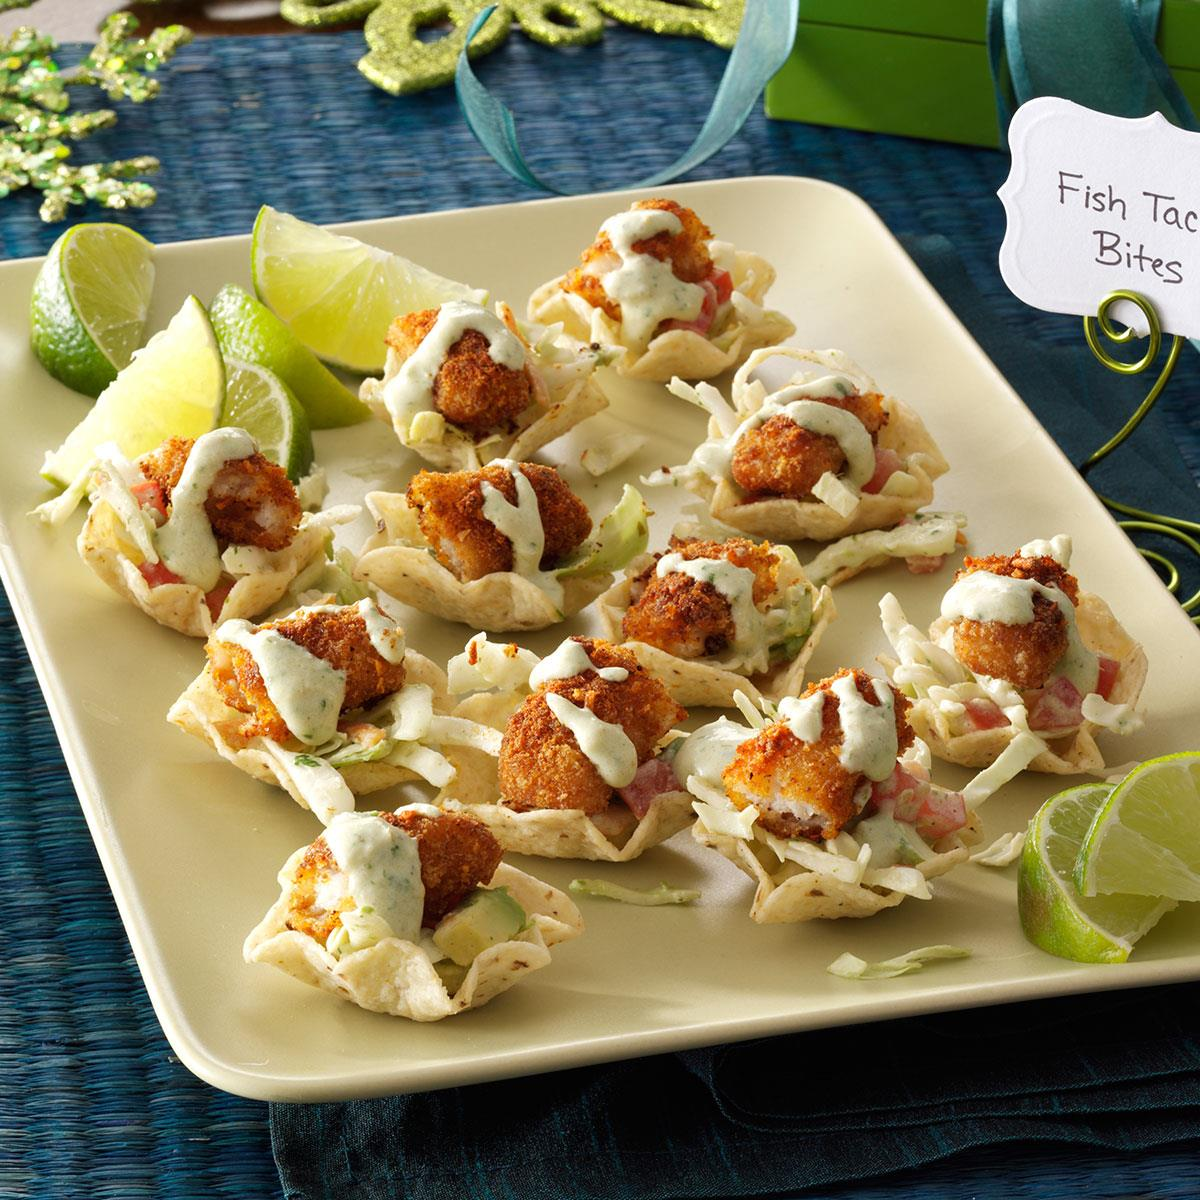 Fish taco bites recipe taste of home for Appetizers to make at home